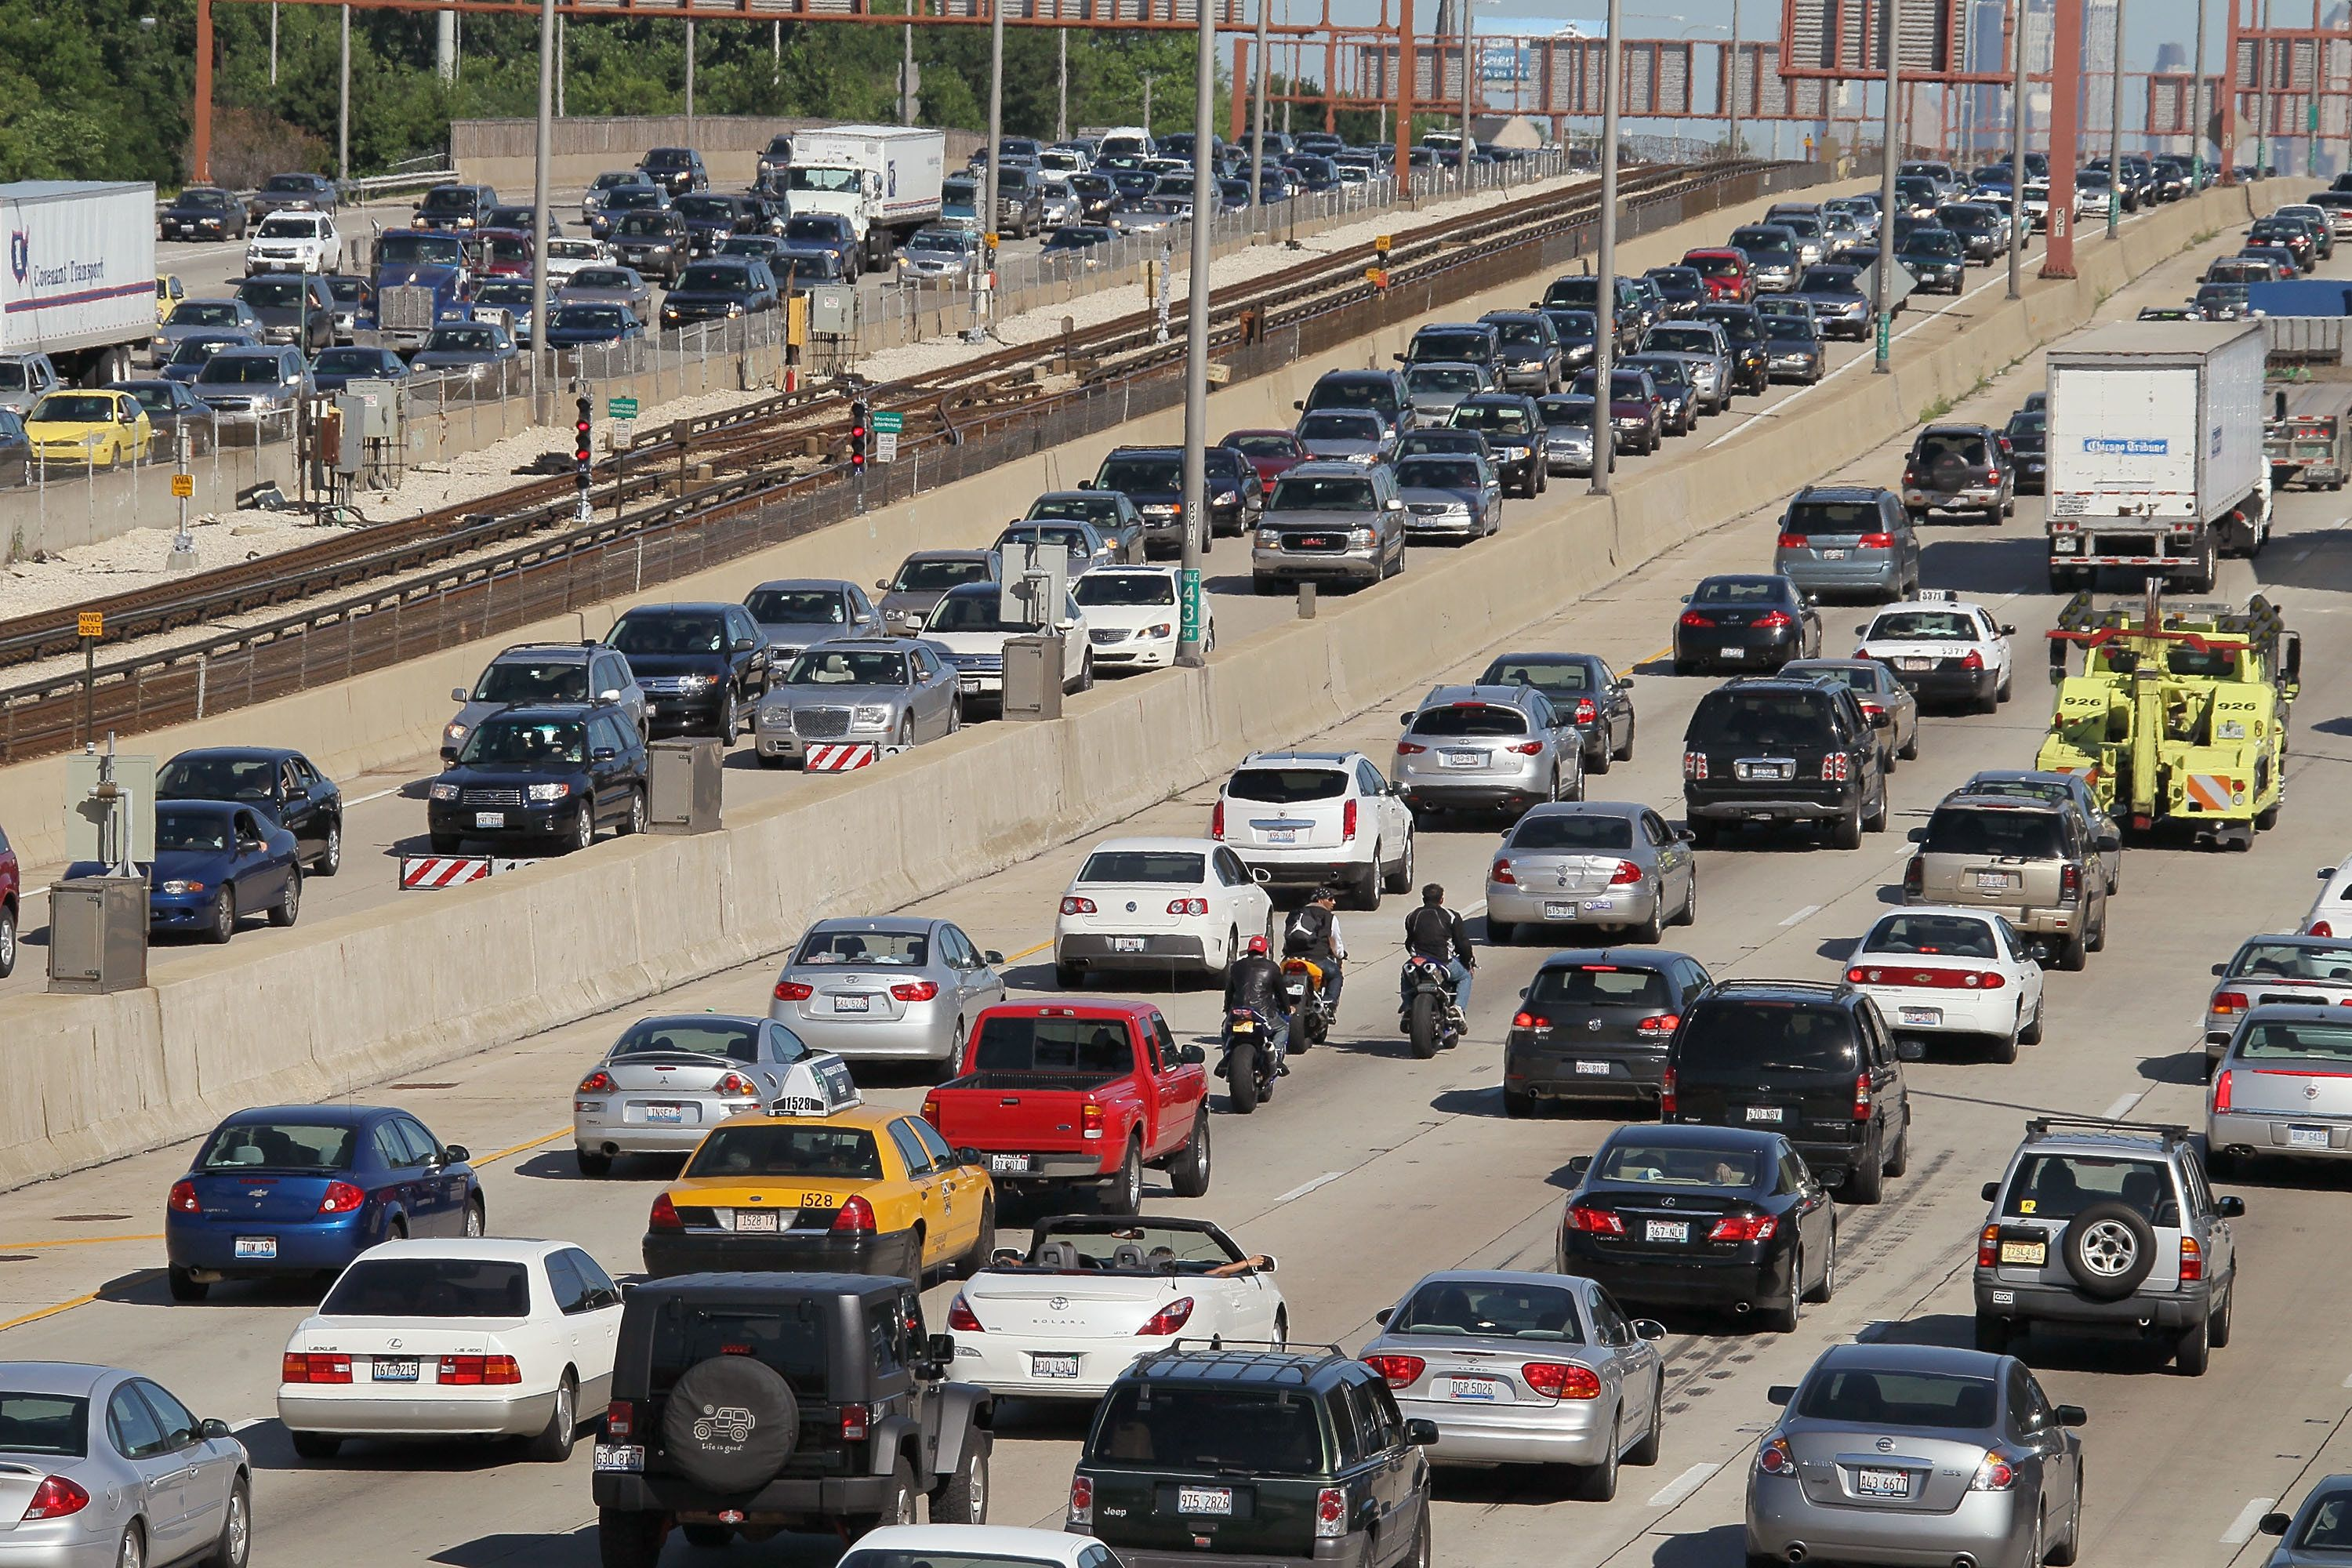 47 Million Expected To Travel For July 4th Holiday, AAA